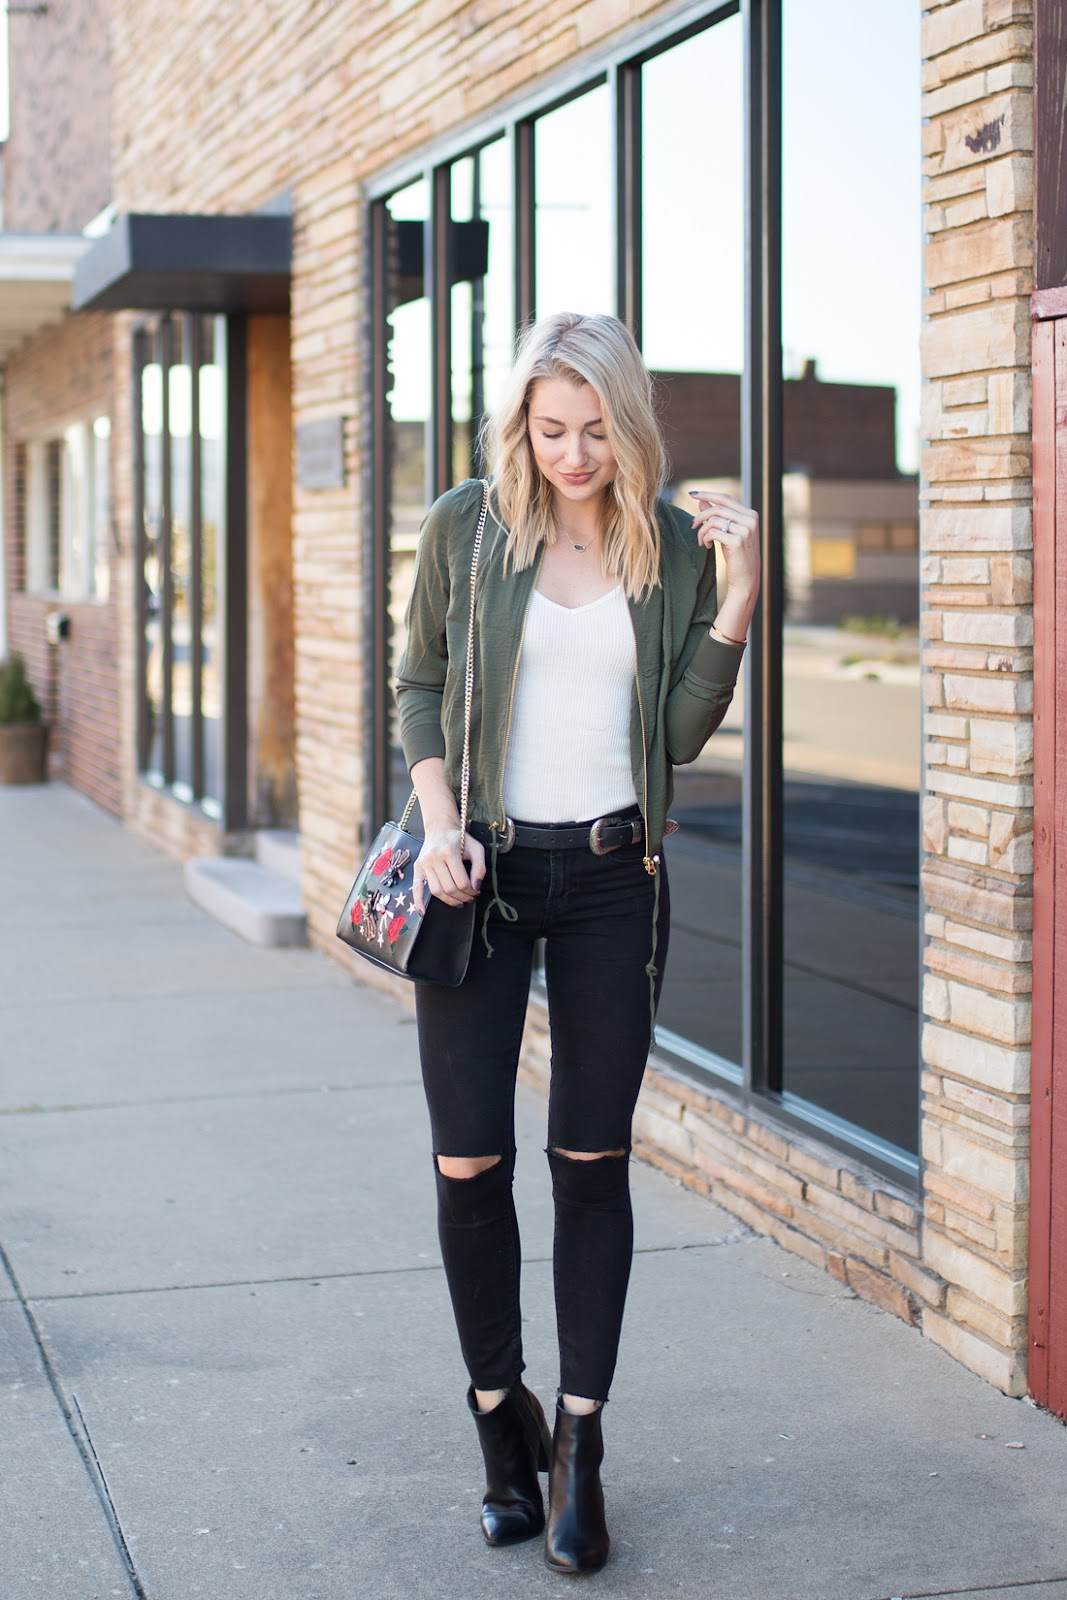 Fall outfit with a bomber jacket